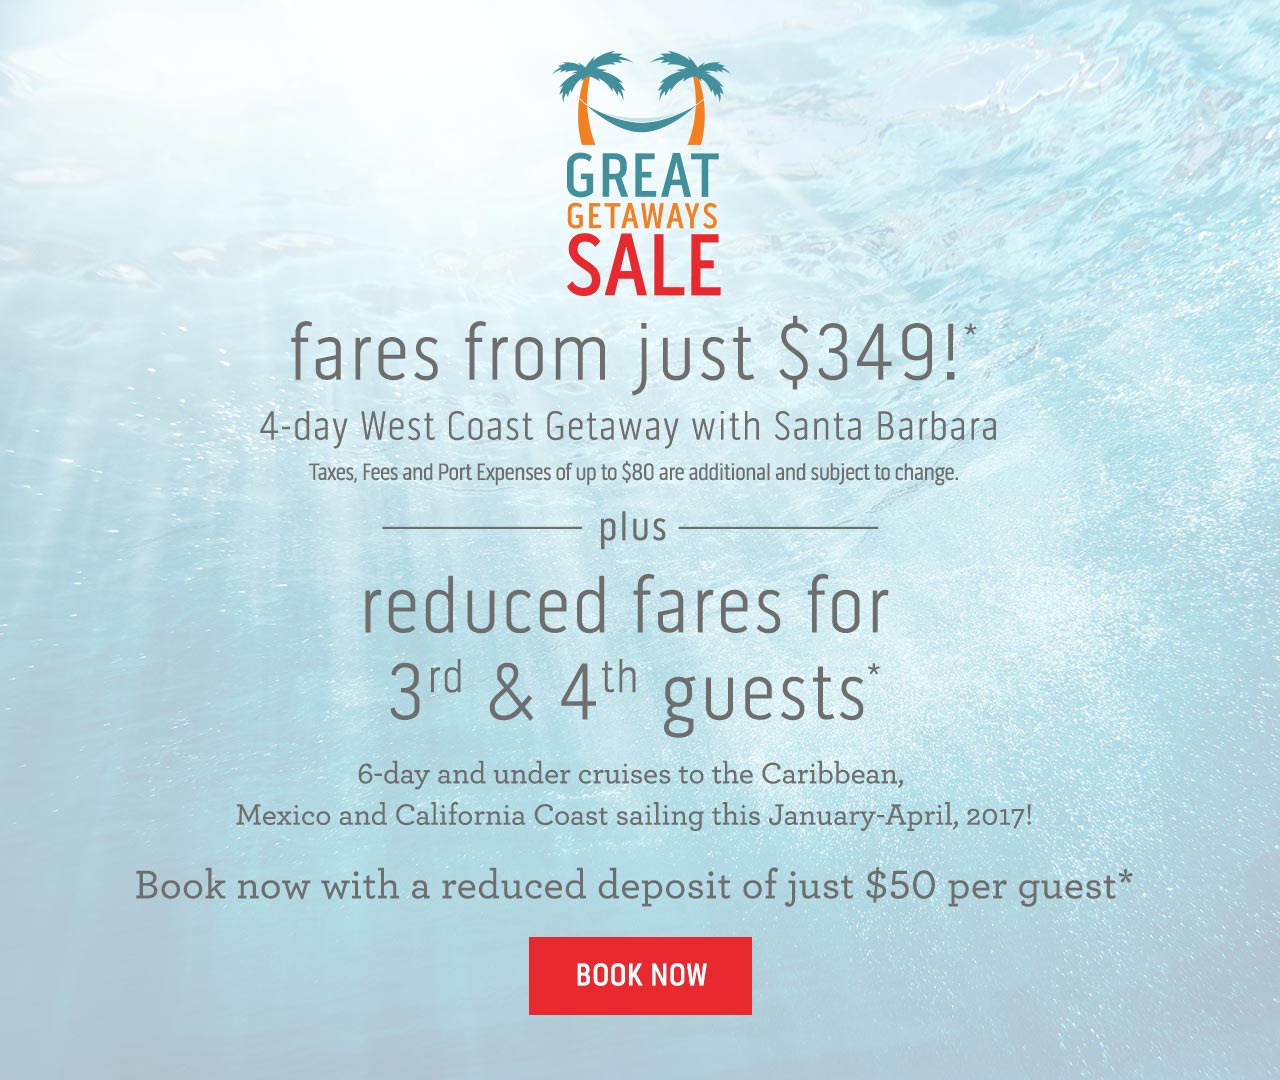 Great Getaways Sale - fares from just $349! Plus reduced fares for 3rd & 4th guests. Click here to book now.